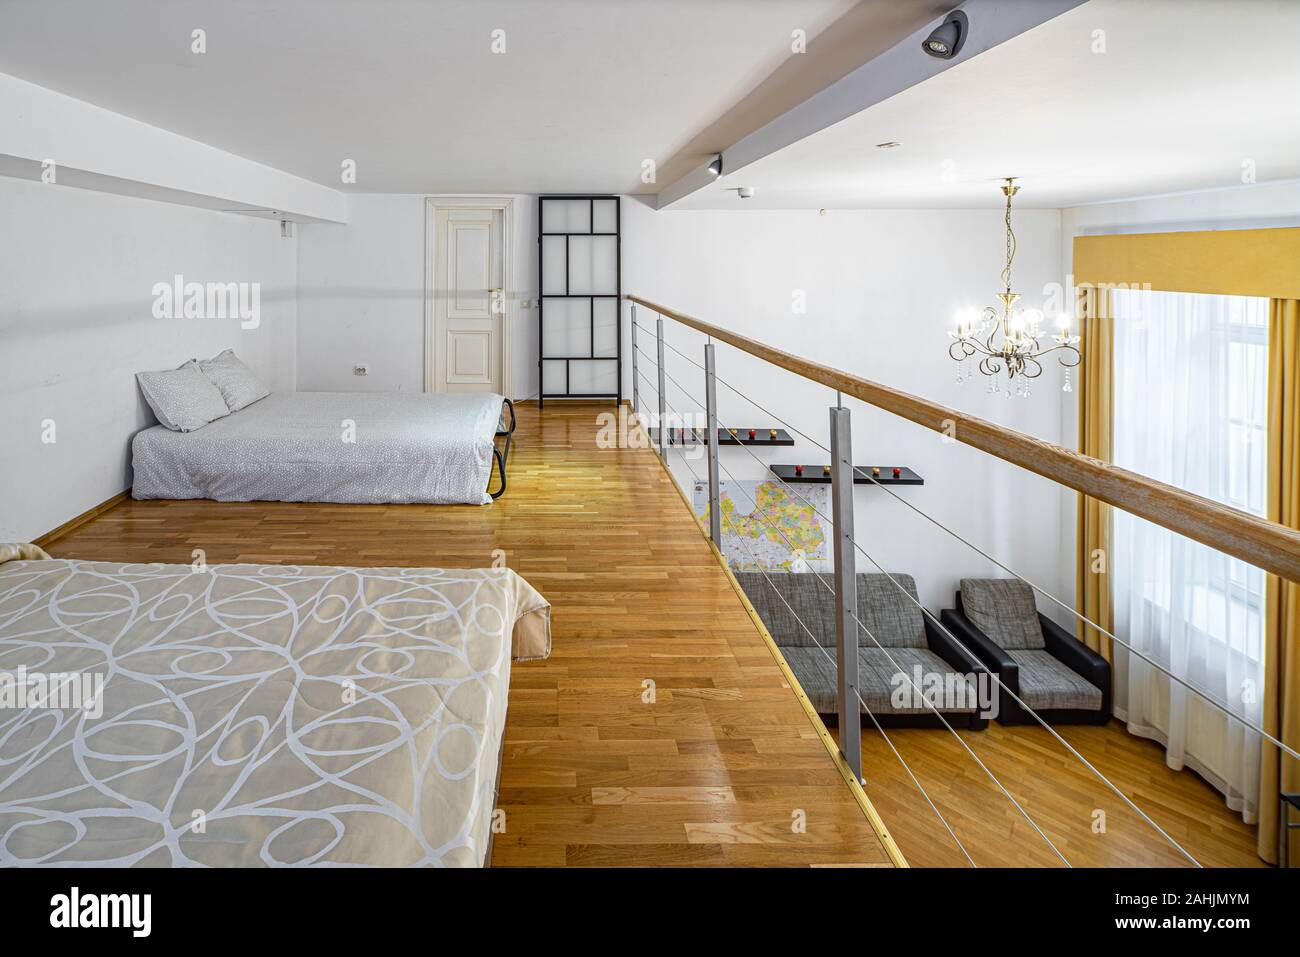 Two Beds On The Second Floor In Private House Modern Interior In Light Tones White Walls Stock Photo Alamy